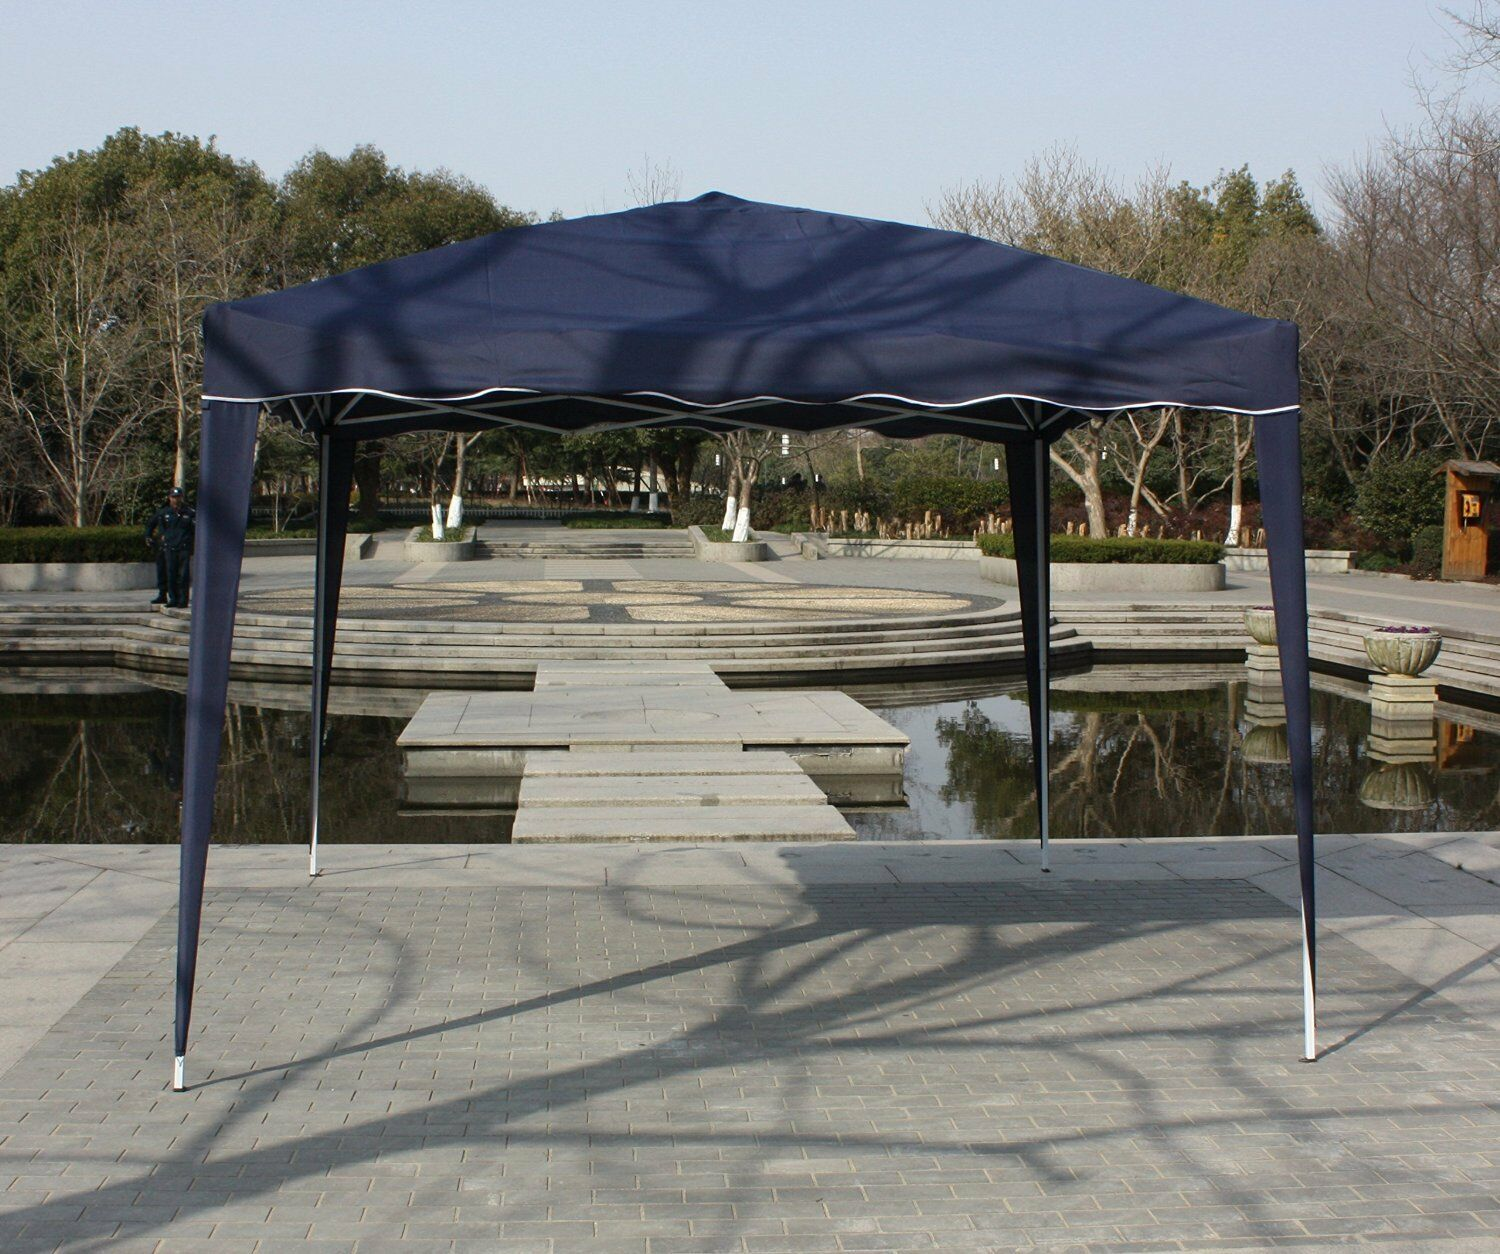 Picture 1 of 4 ... & 10x10 Instant Navy Pop up Outdoor Canopy Party Wedding Portable ...